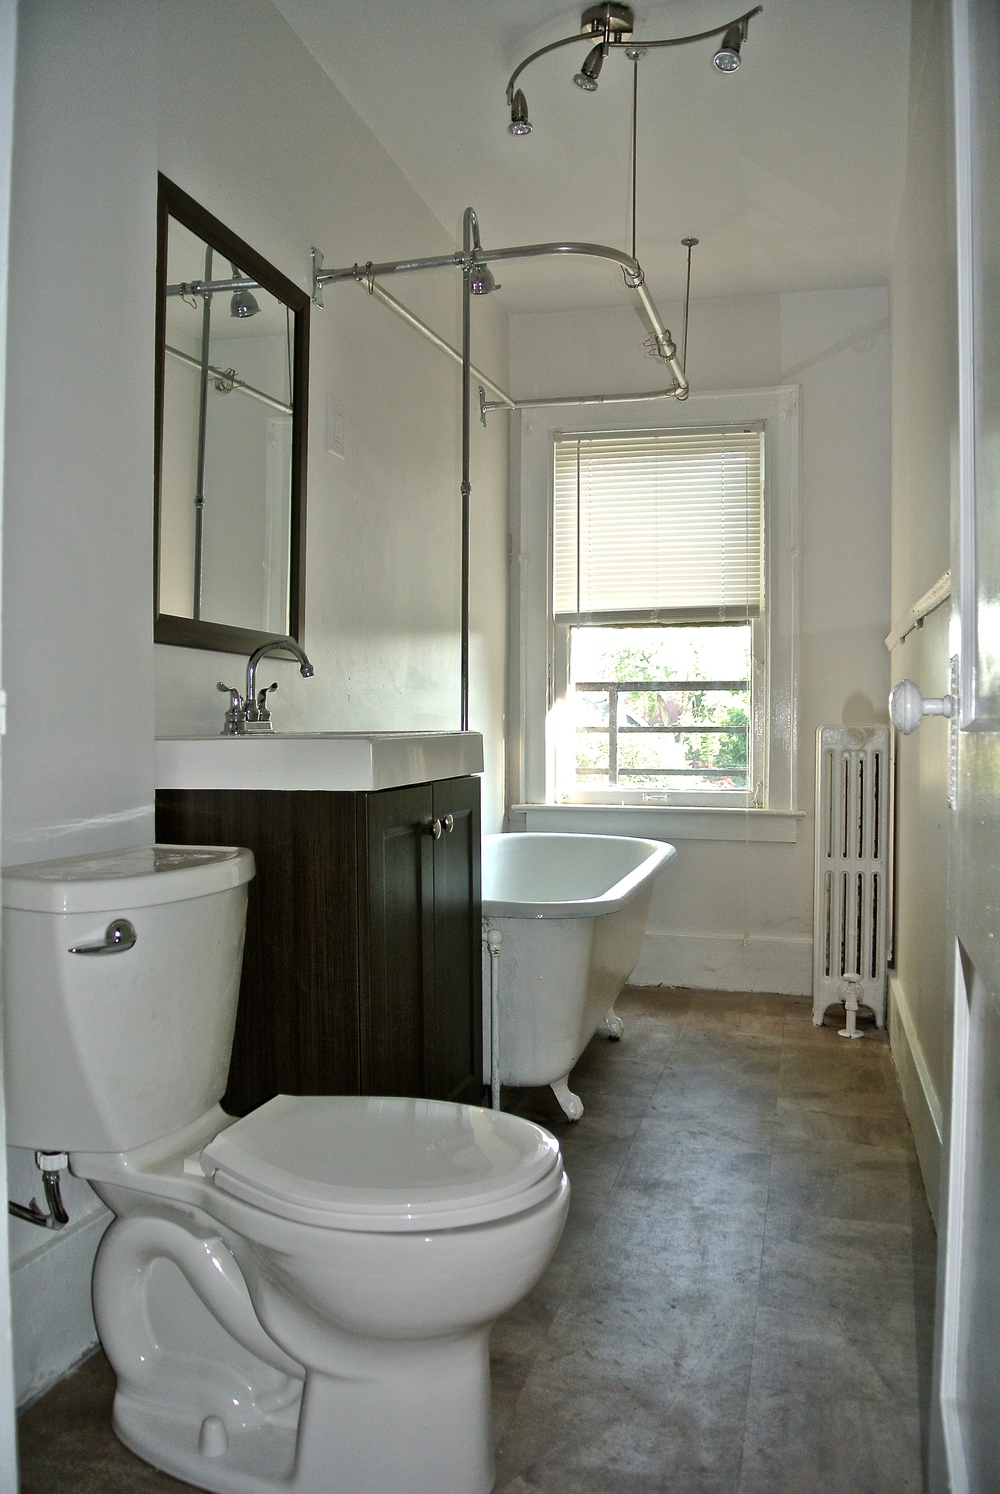 37 Thayer St - #3 - Bathroom.jpg